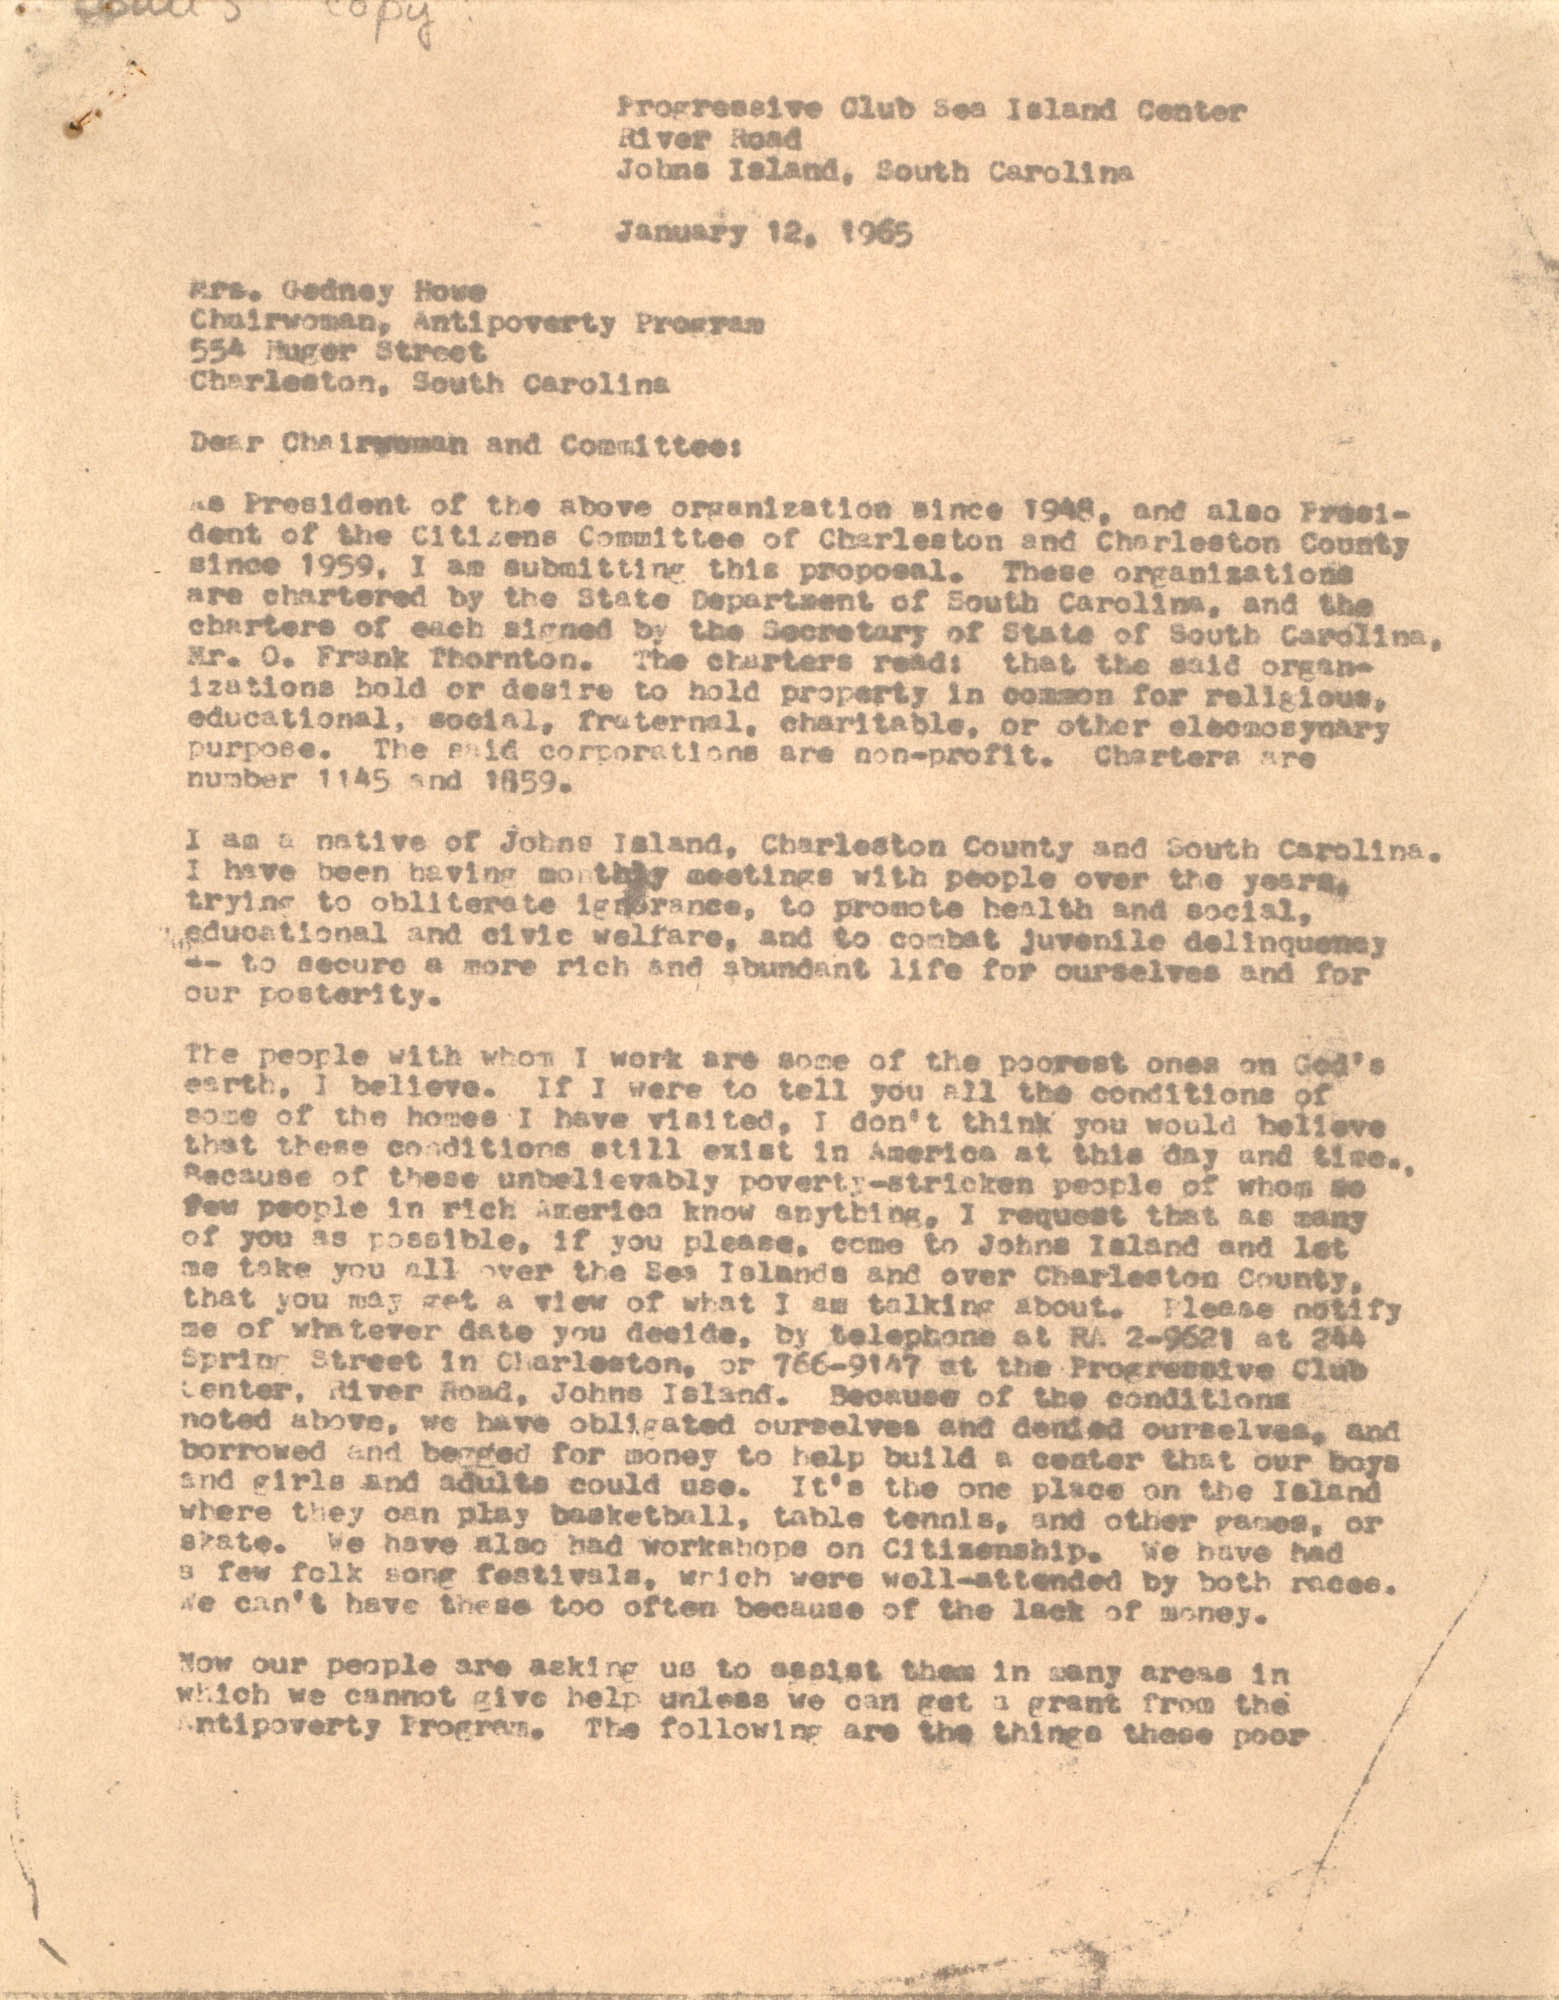 Progressive Club Sea Island Center Correspondence, January 12, 1965